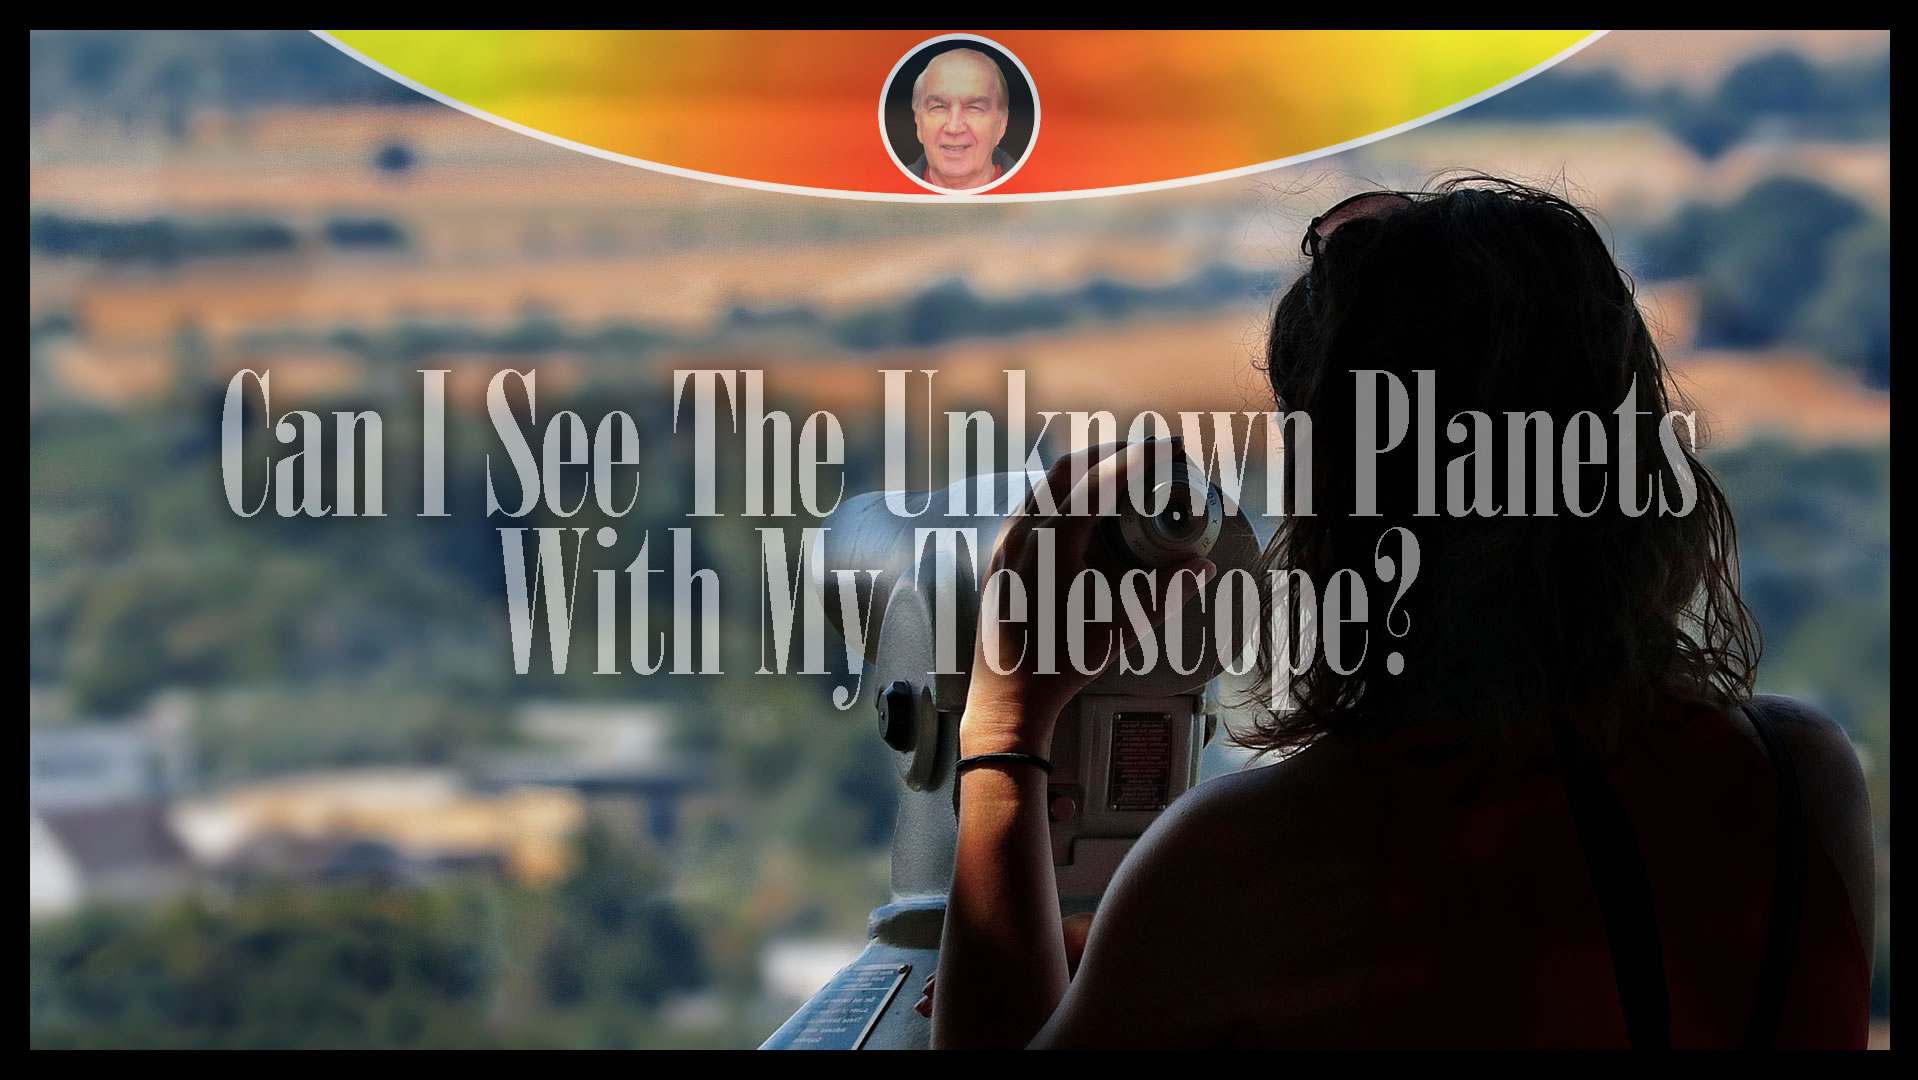 Can I See The Unknown Planets With My Telescope?